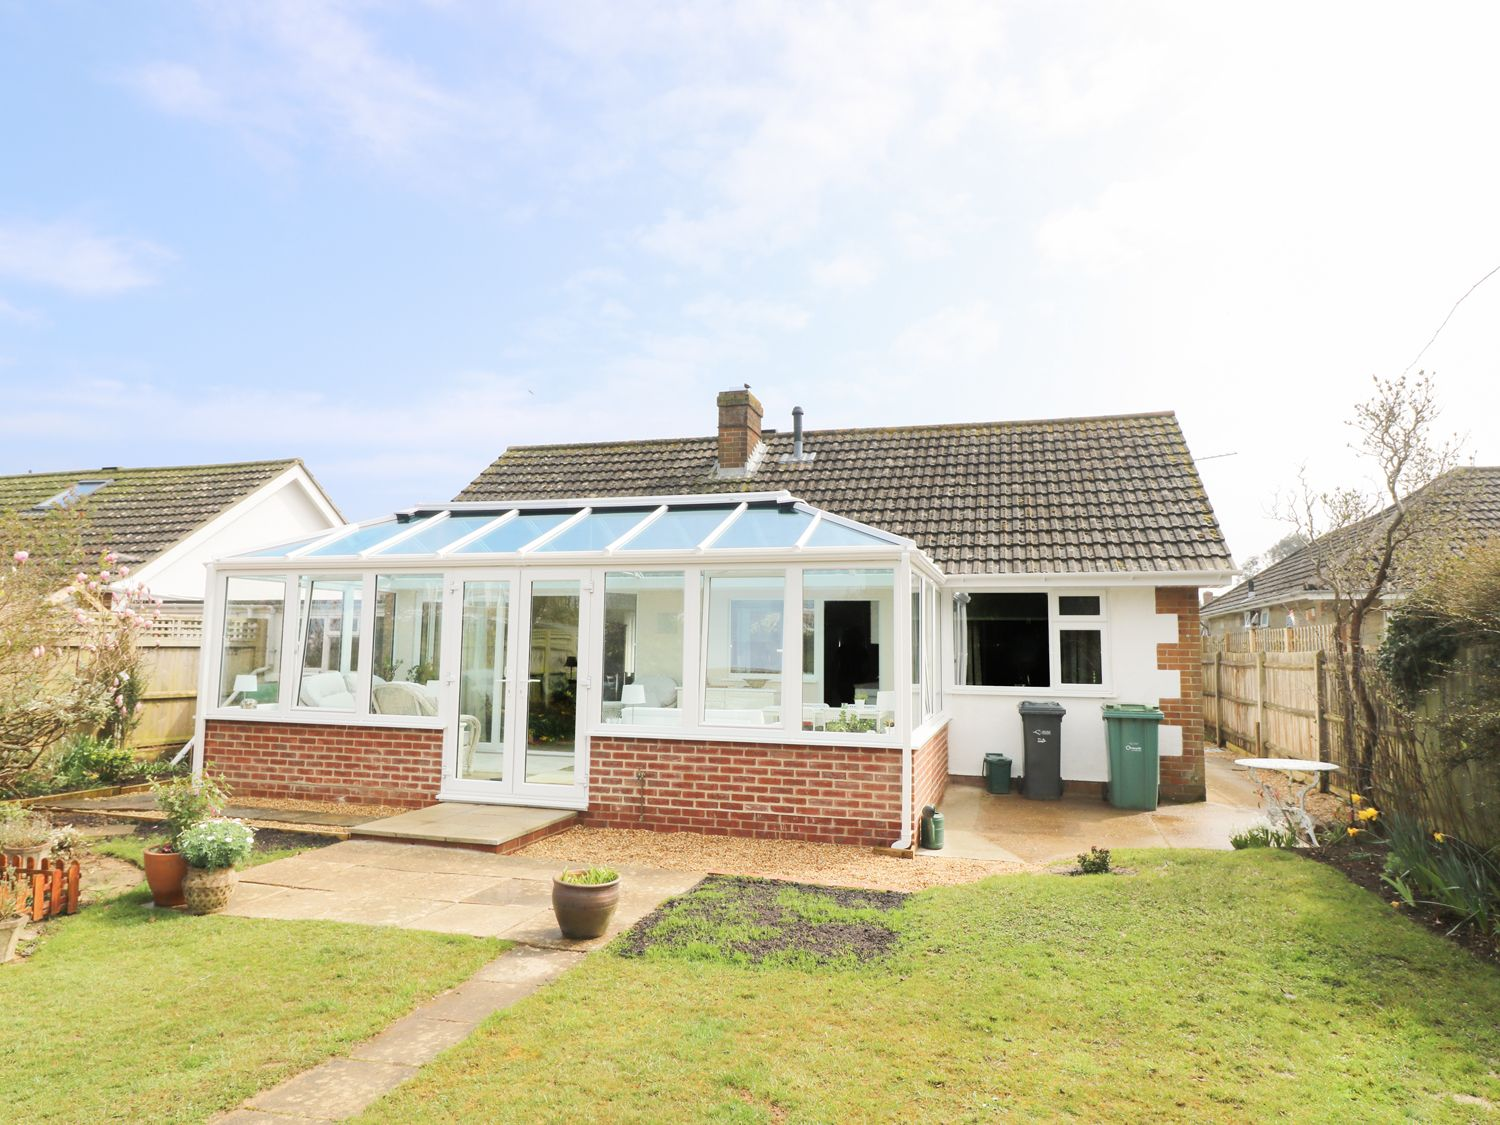 19 Walls Road - Isle of Wight & Hampshire - 973882 - photo 1